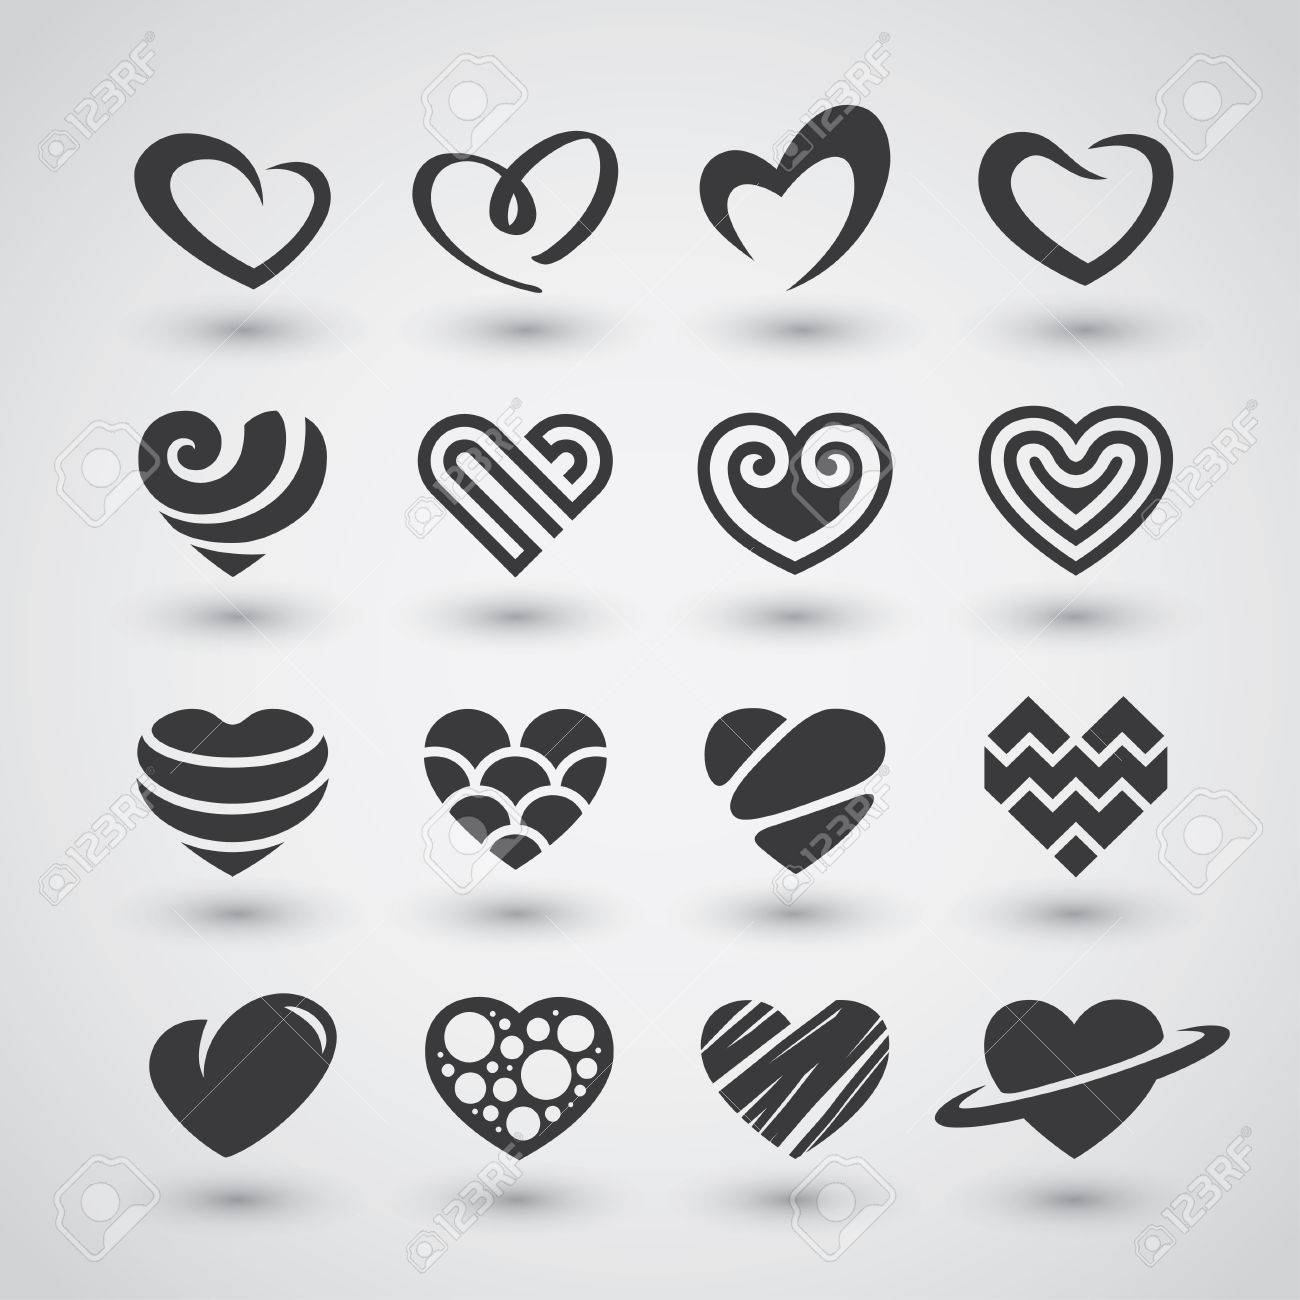 Set Of Black Heart Icons Logos Signs And Symbols For Love